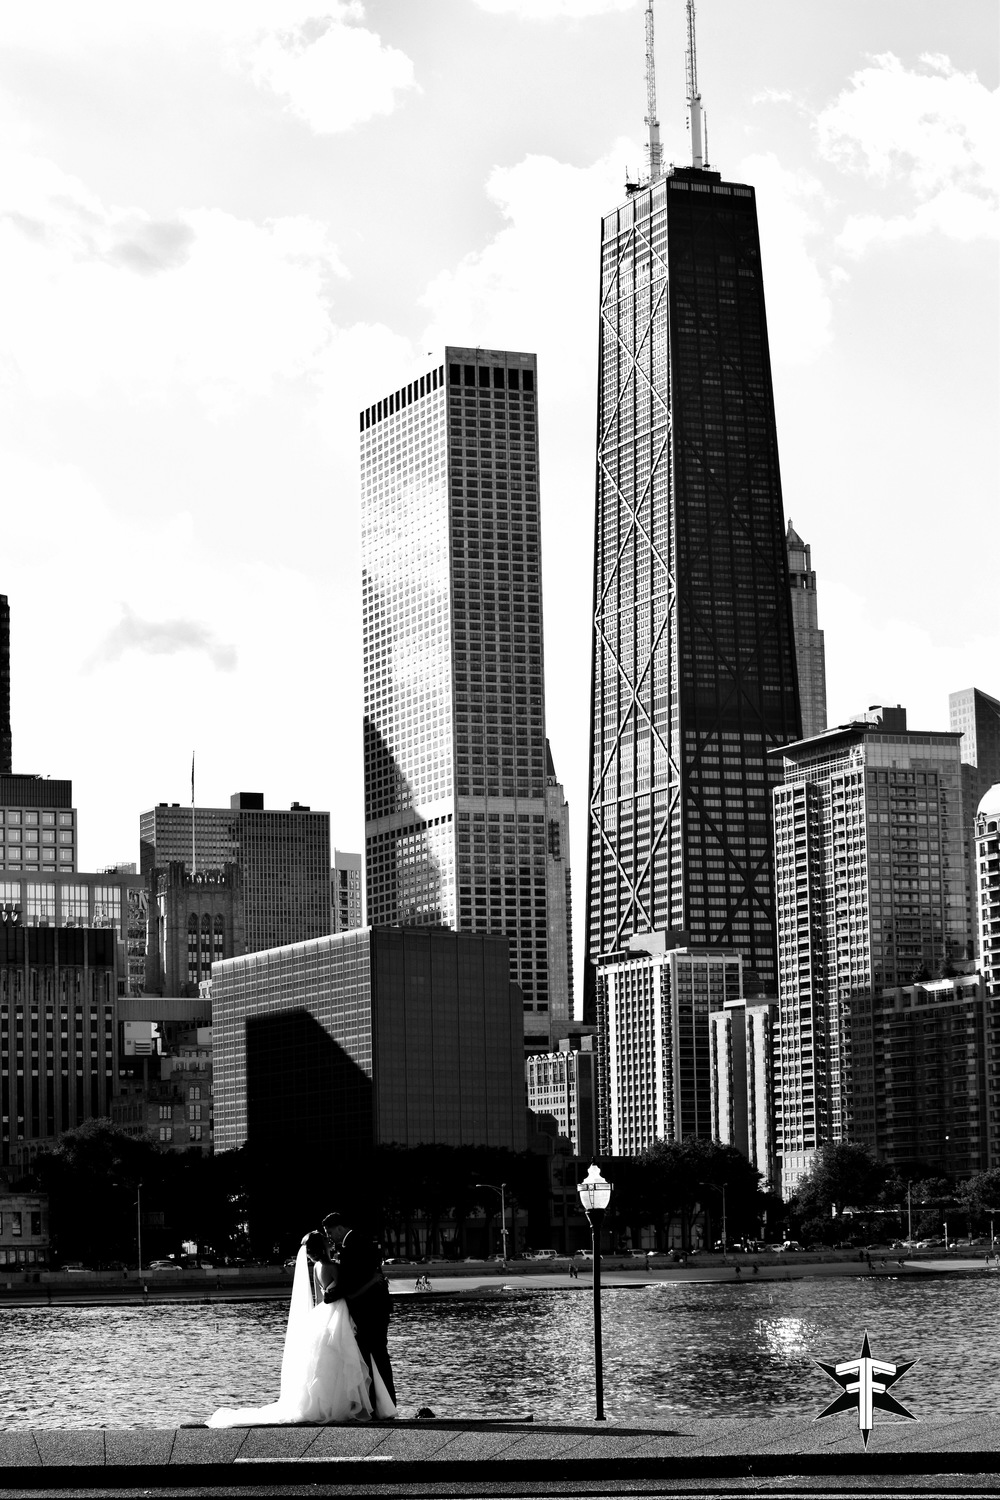 chicago architecture eric formato photography design arquitectura architettura buildings skyscraper skyscrapers-141.jpg